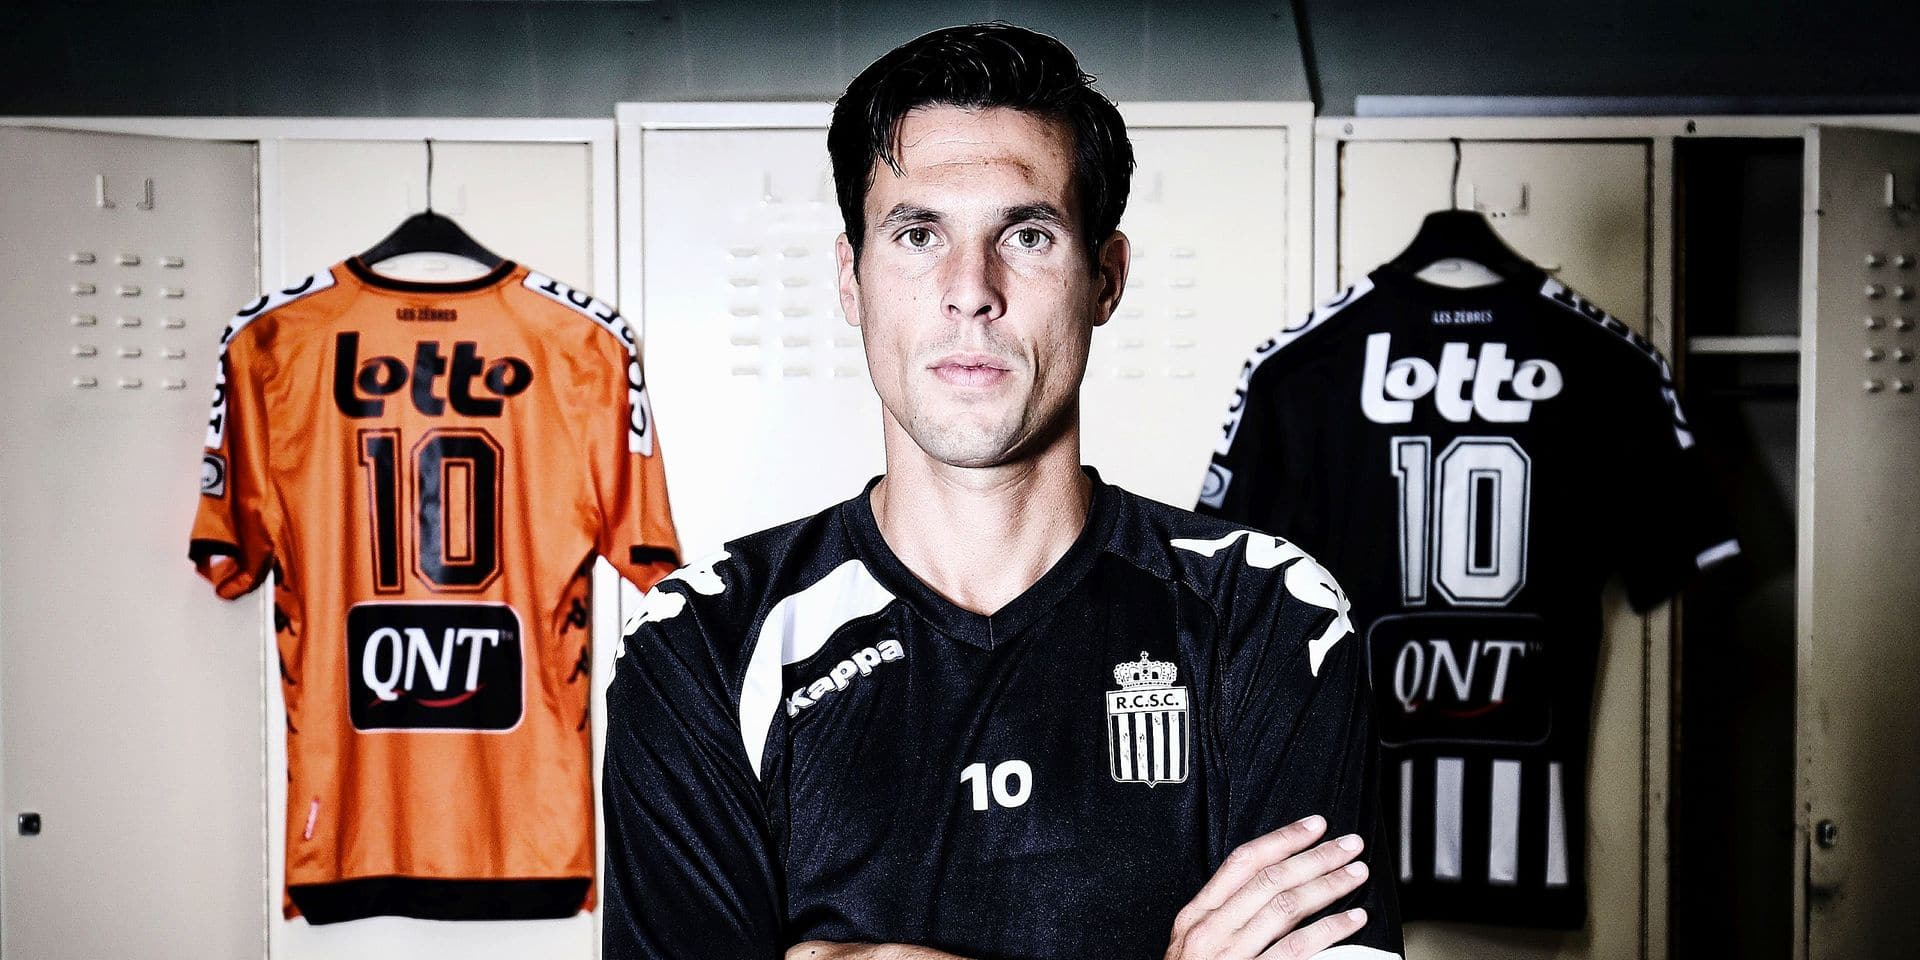 French striker Jeremy Perbet of Sporting Charleroi poses for the photographer at a photoshoot in Charleroi, Tuesday 31 July 2018. BELGA PHOTO VIRGINIE LEFOUR